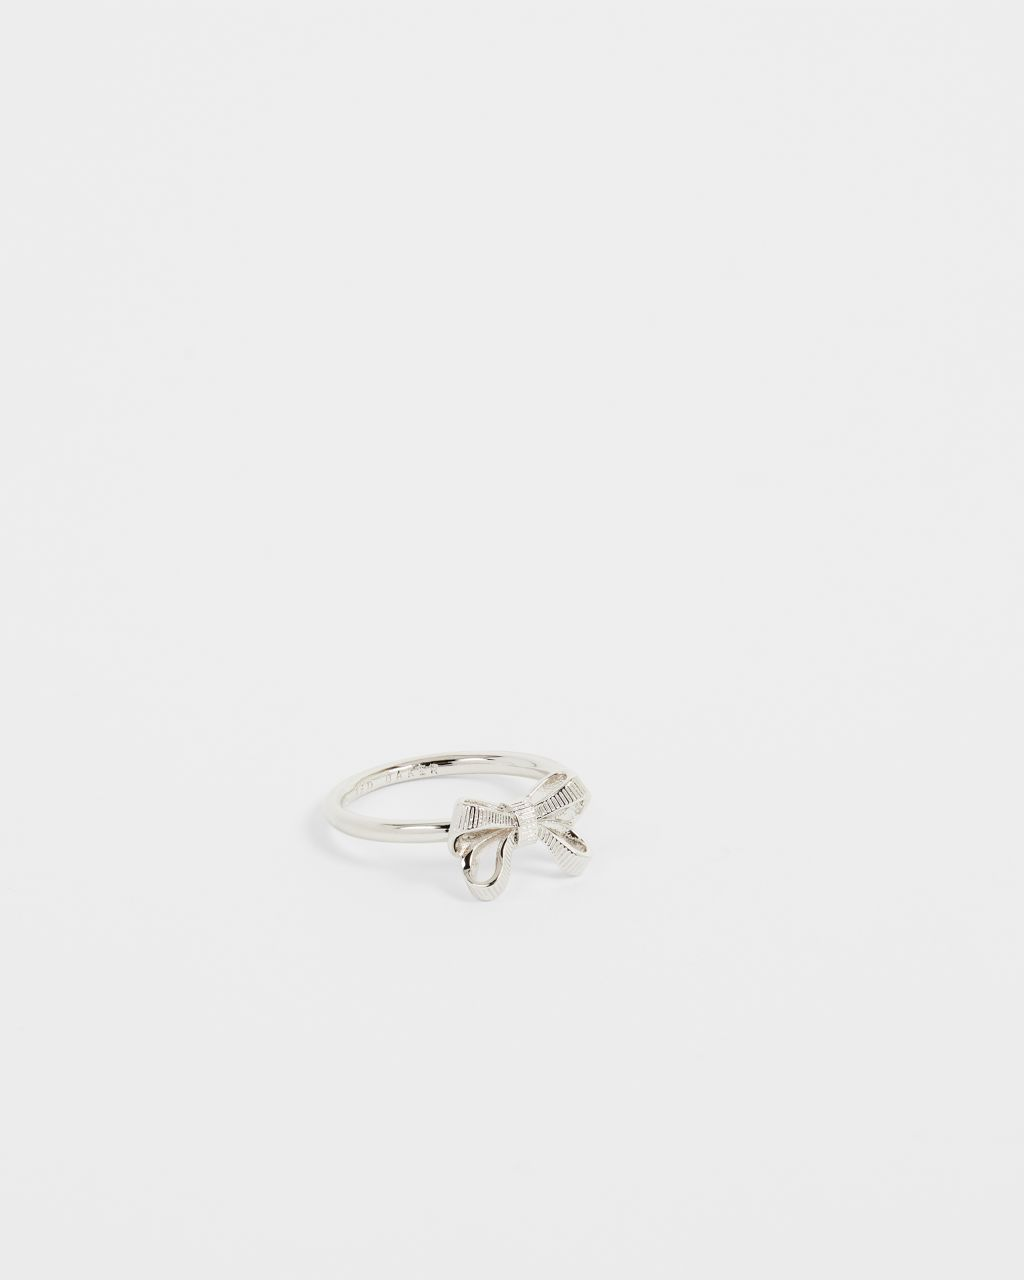 TED BAKER Petite Bow Ring | TED BAKER SALE